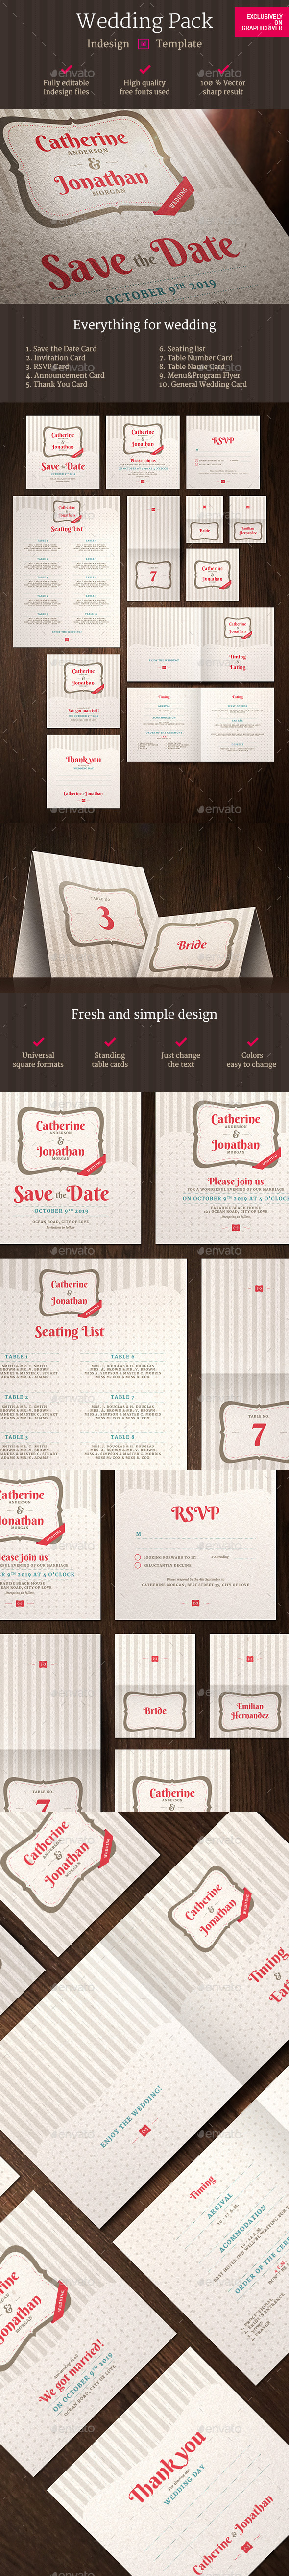 Wedding Pack Indesign Template - Retro/Vintage Business Cards